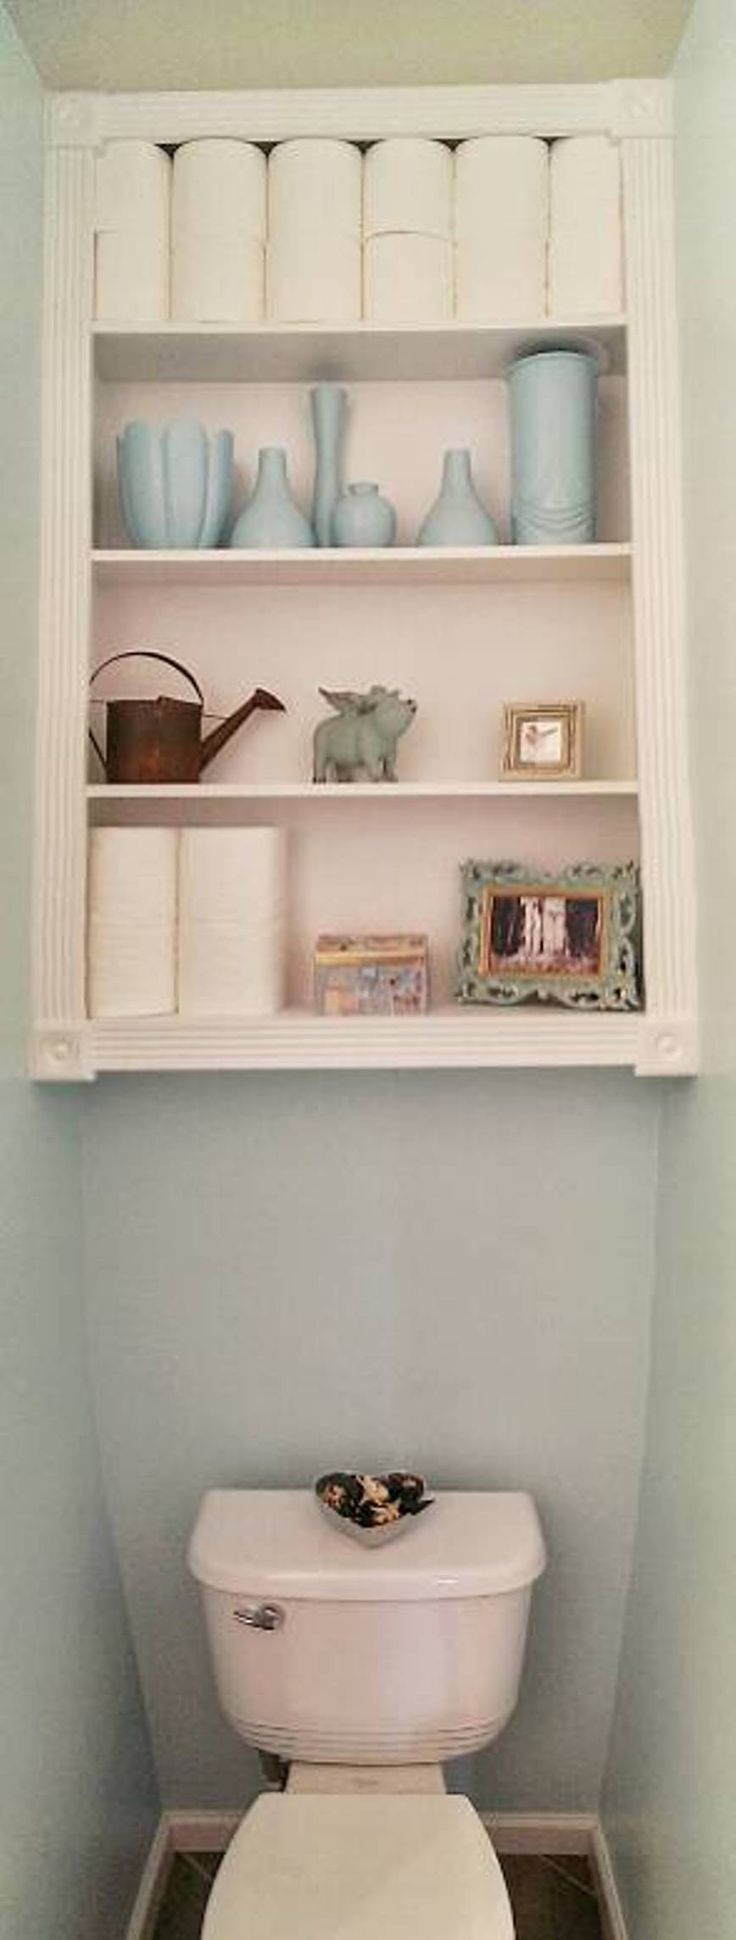 141 best images about favorite home ideas on pinterest for Very small bathroom storage ideas